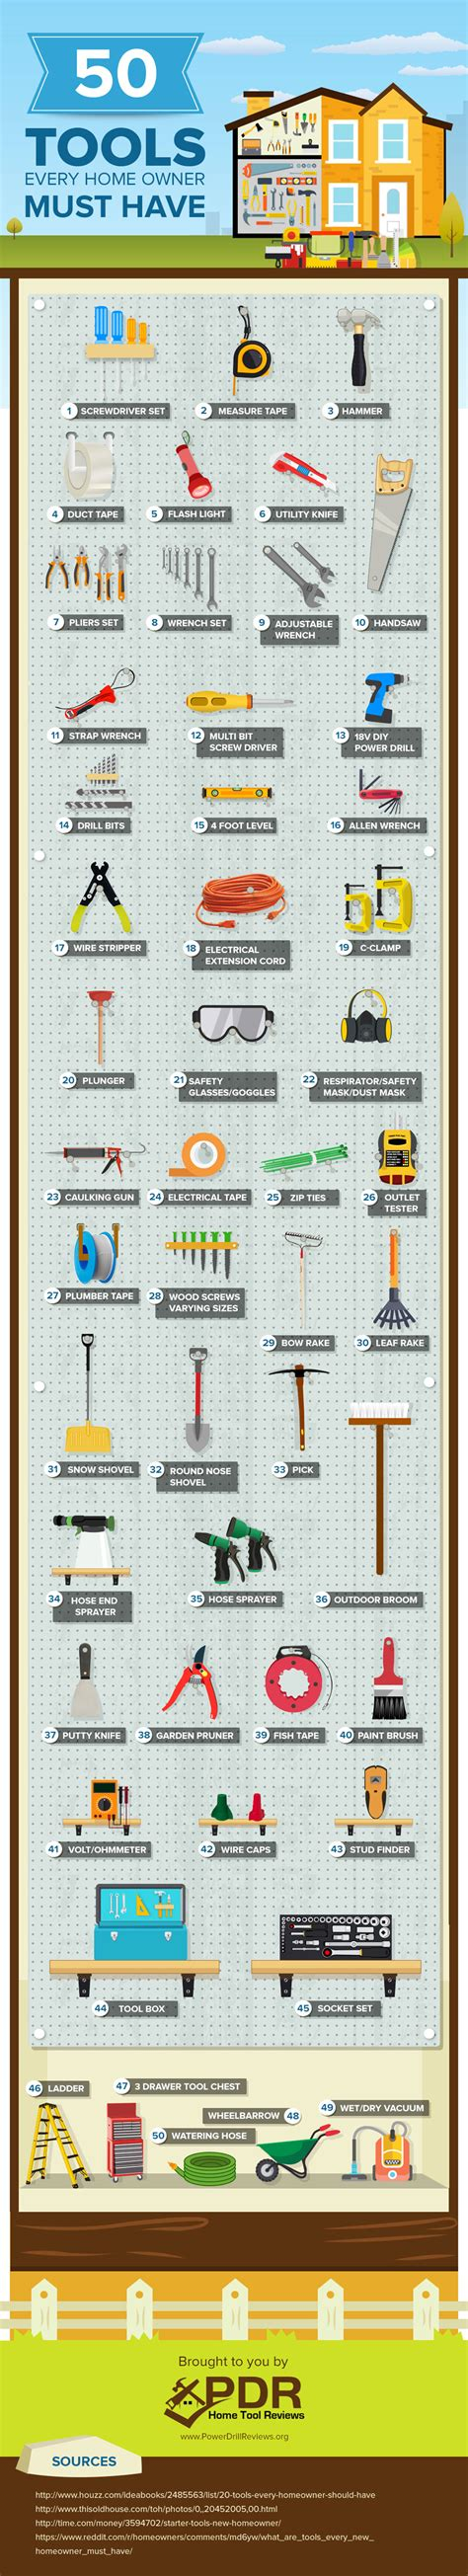 50 must home improvement tools infographic